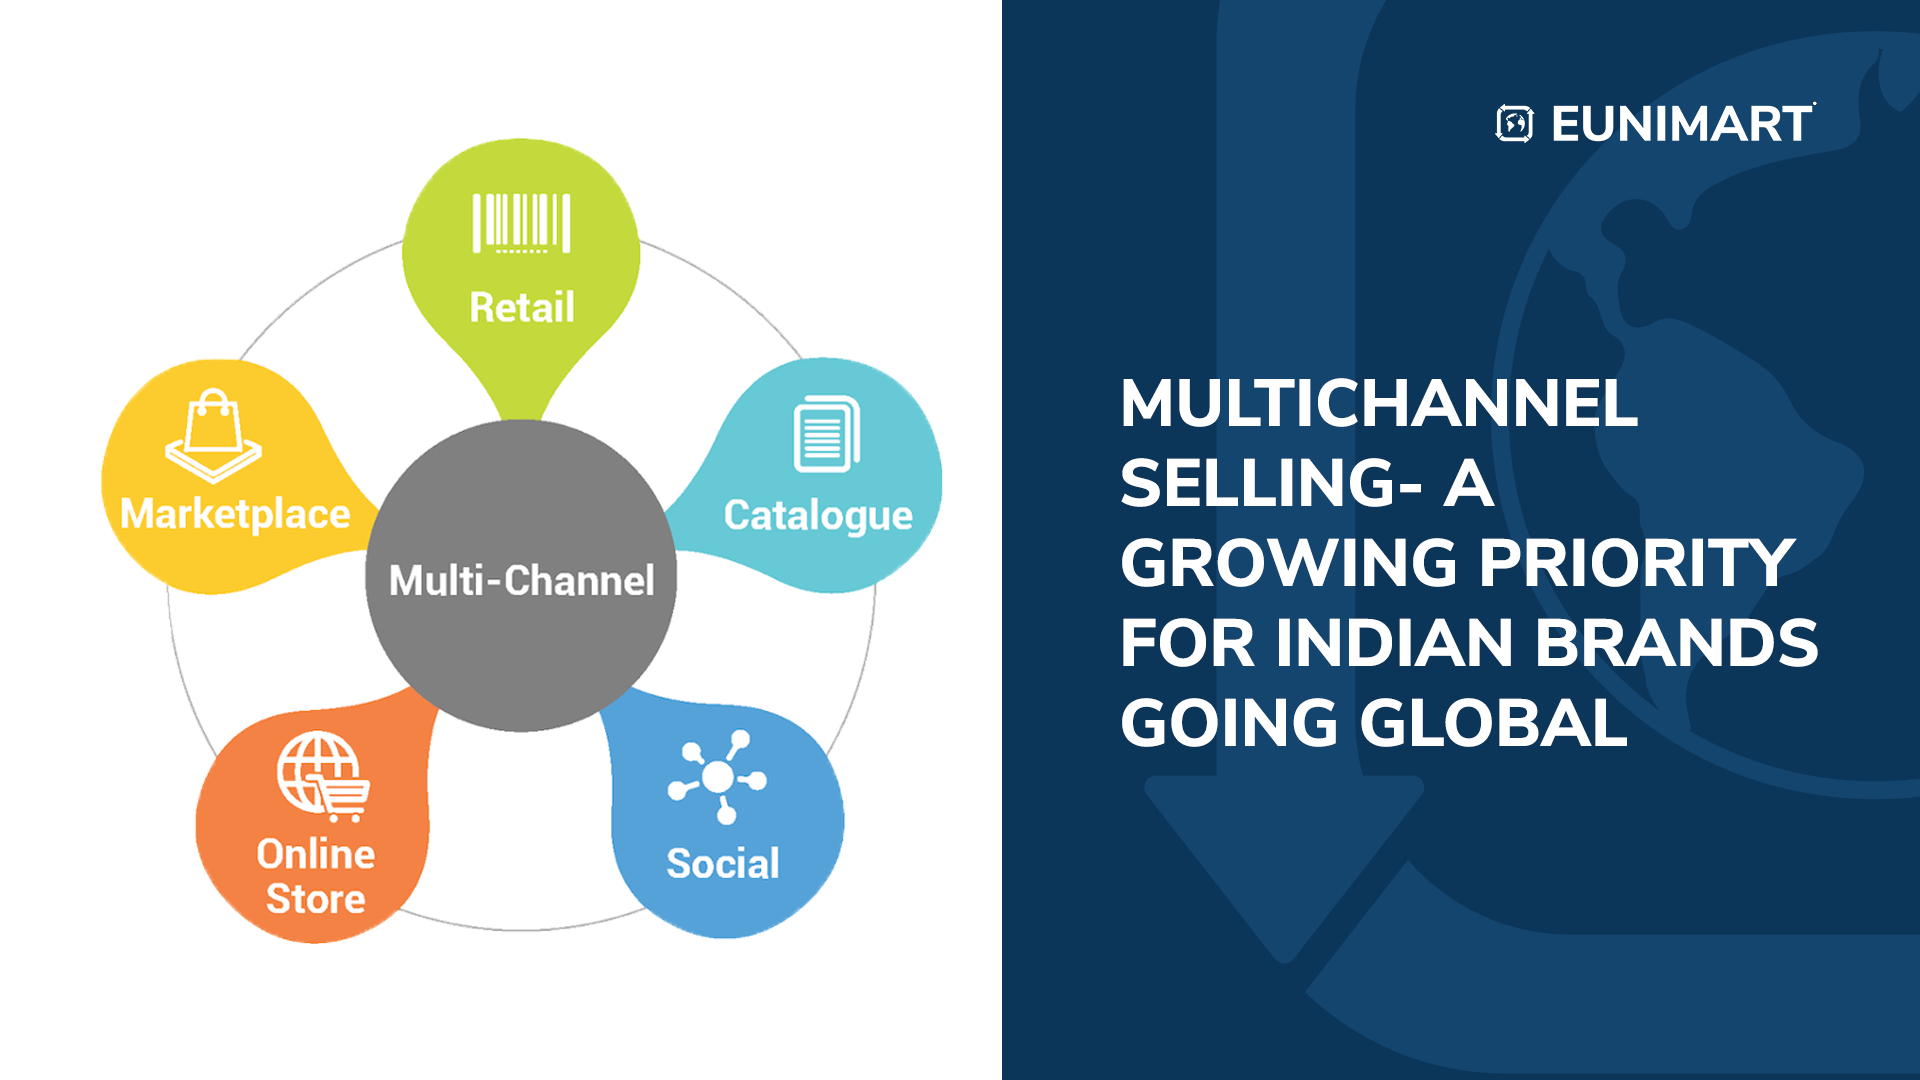 Multichannel Selling- A Growing Priority for Indian Brands going Global